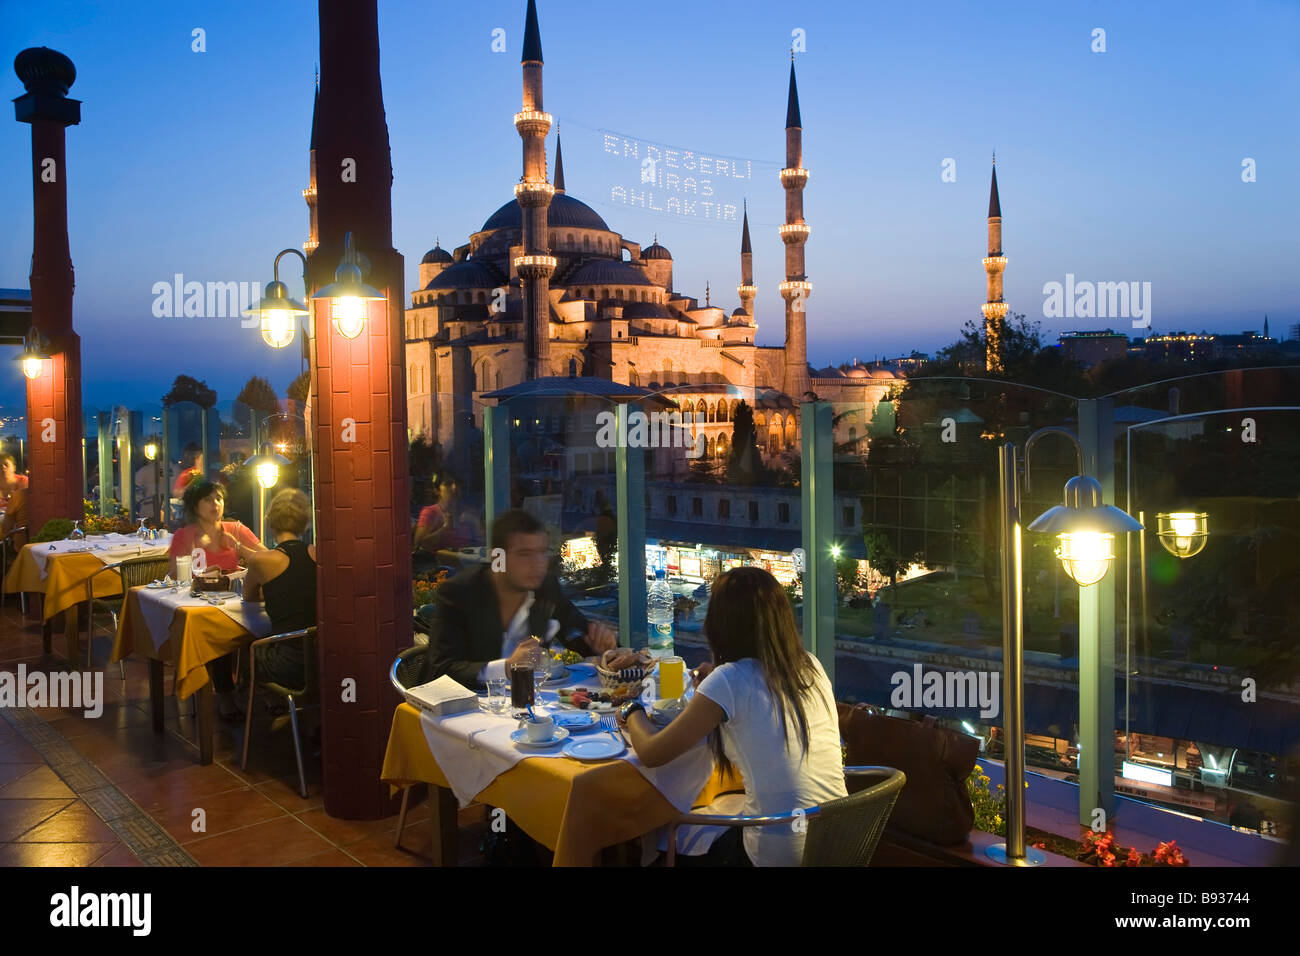 The Blue Mosque or Sultan Ahmet Mosque 1609 1616 rooftop restaurant dusk Sultanahmet District Istanbul Turkey - Stock Image